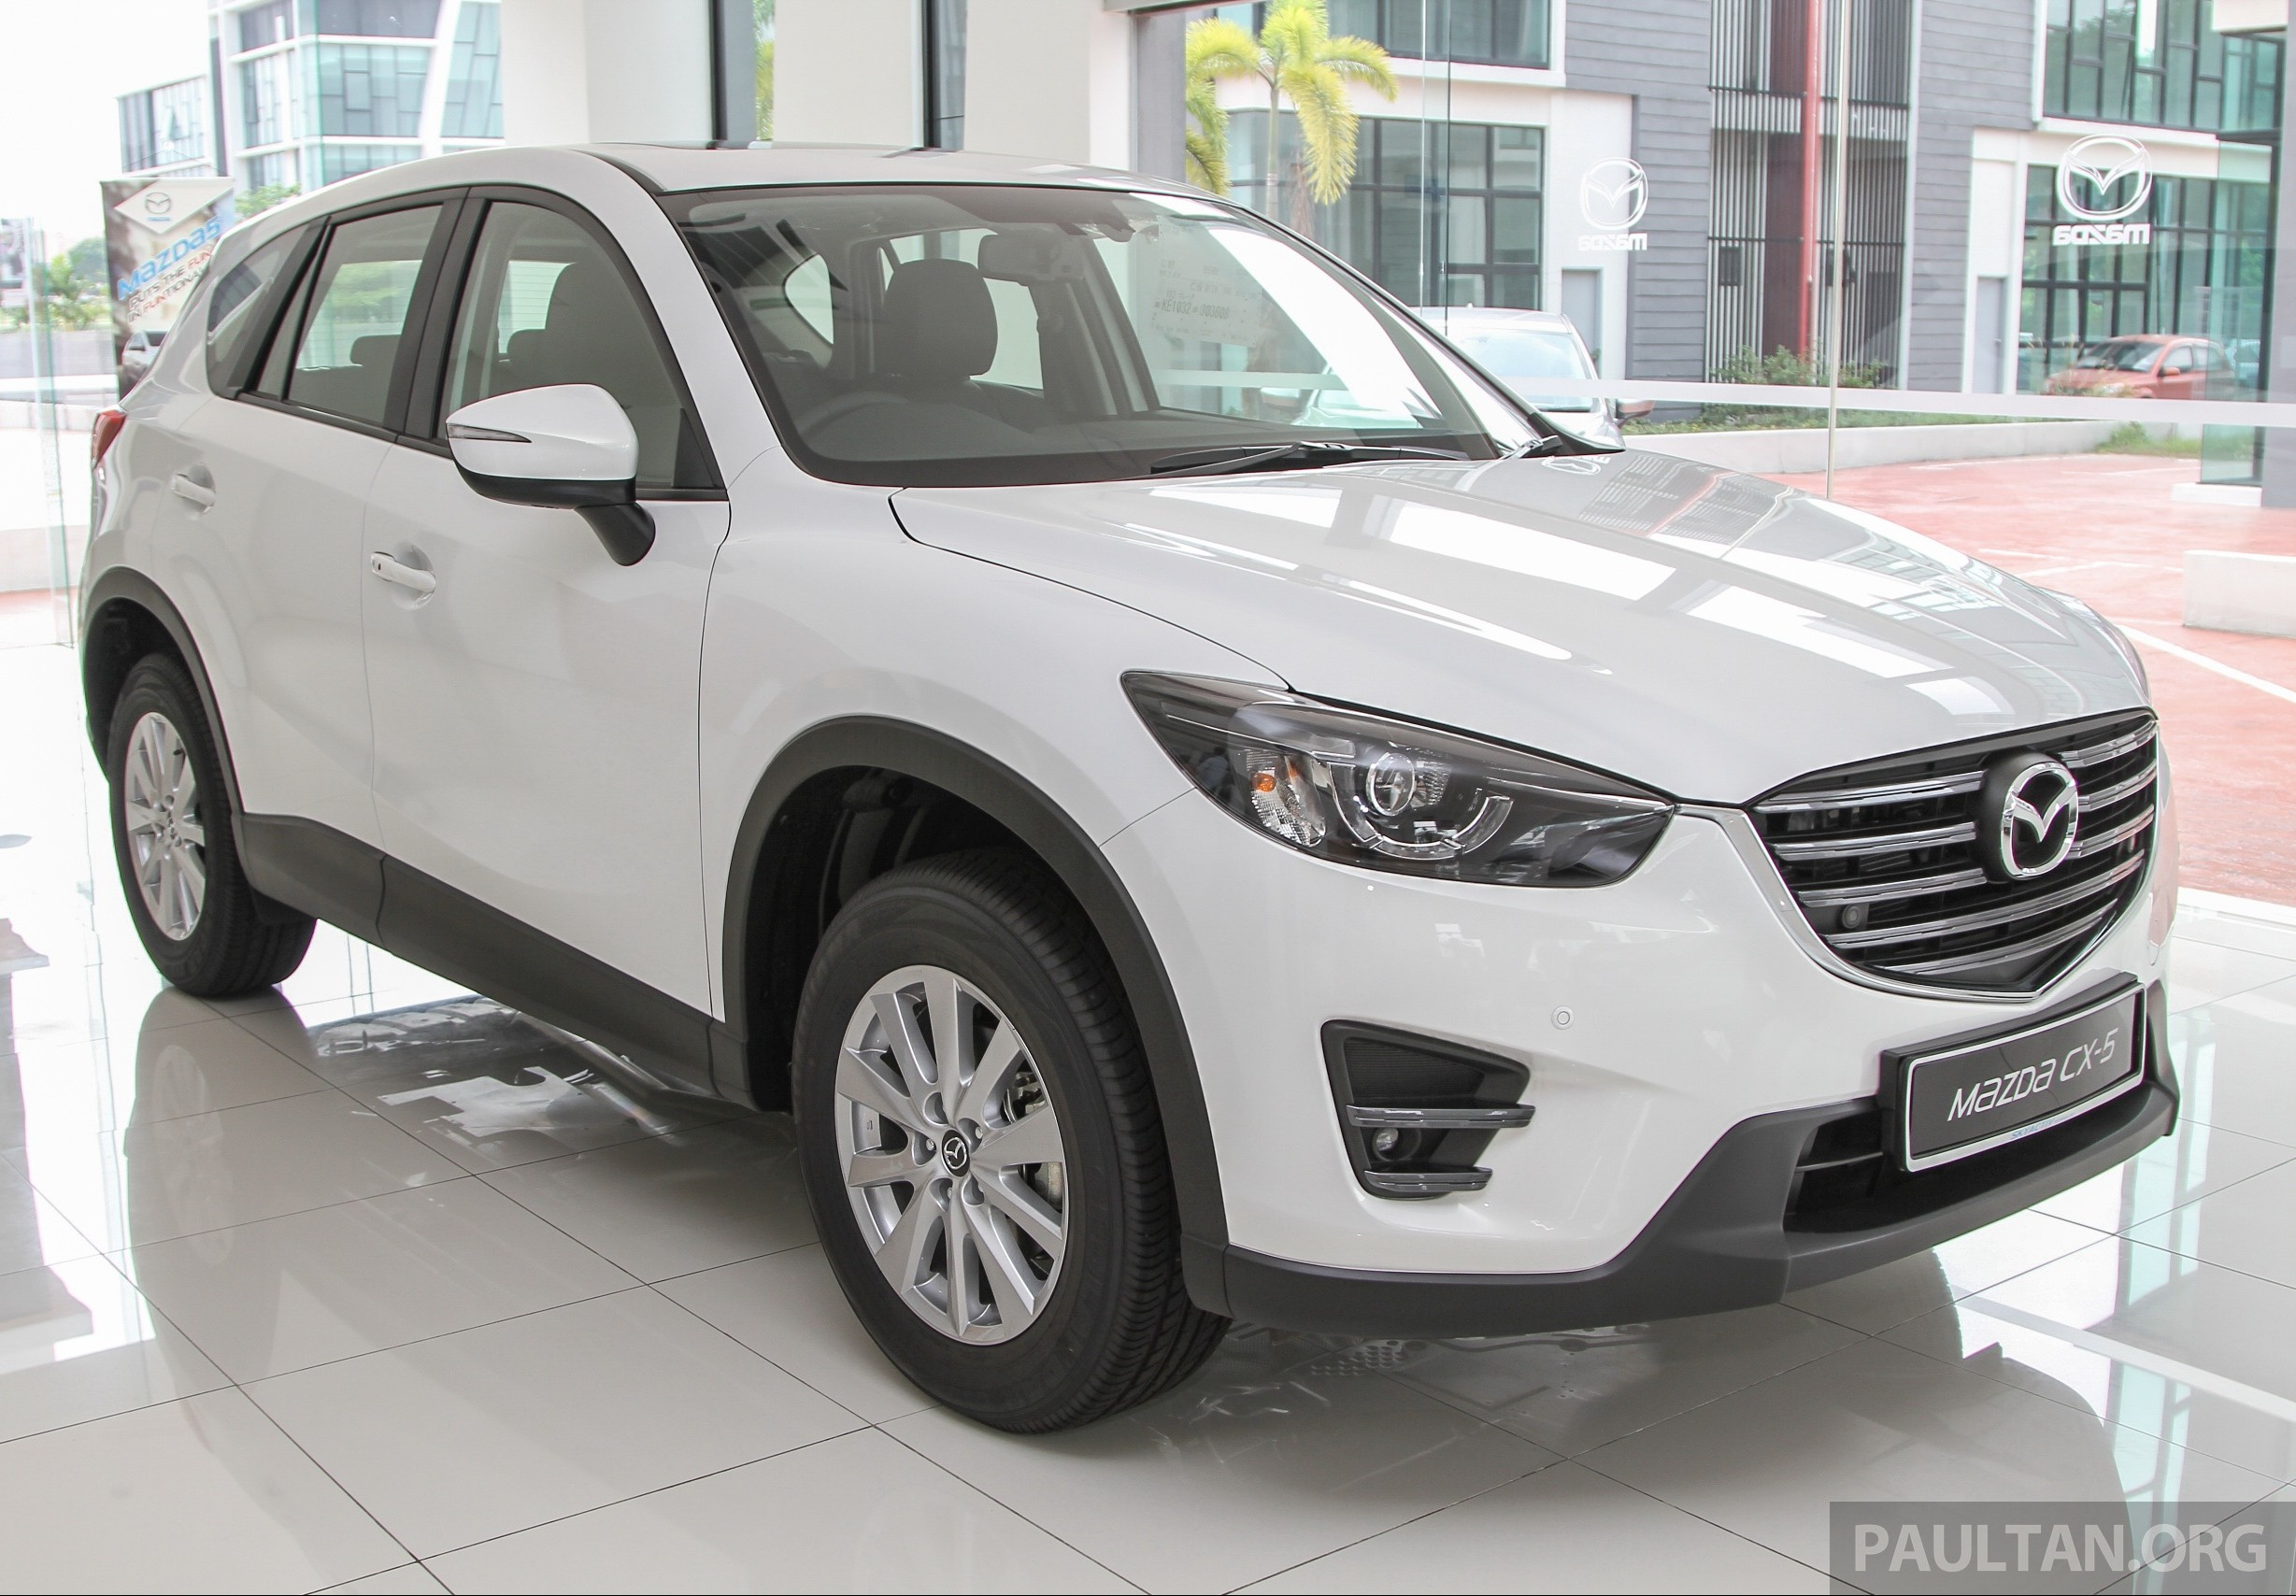 mazda cx 5 facelift in malaysia cbu 2 5 from rm168k. Black Bedroom Furniture Sets. Home Design Ideas